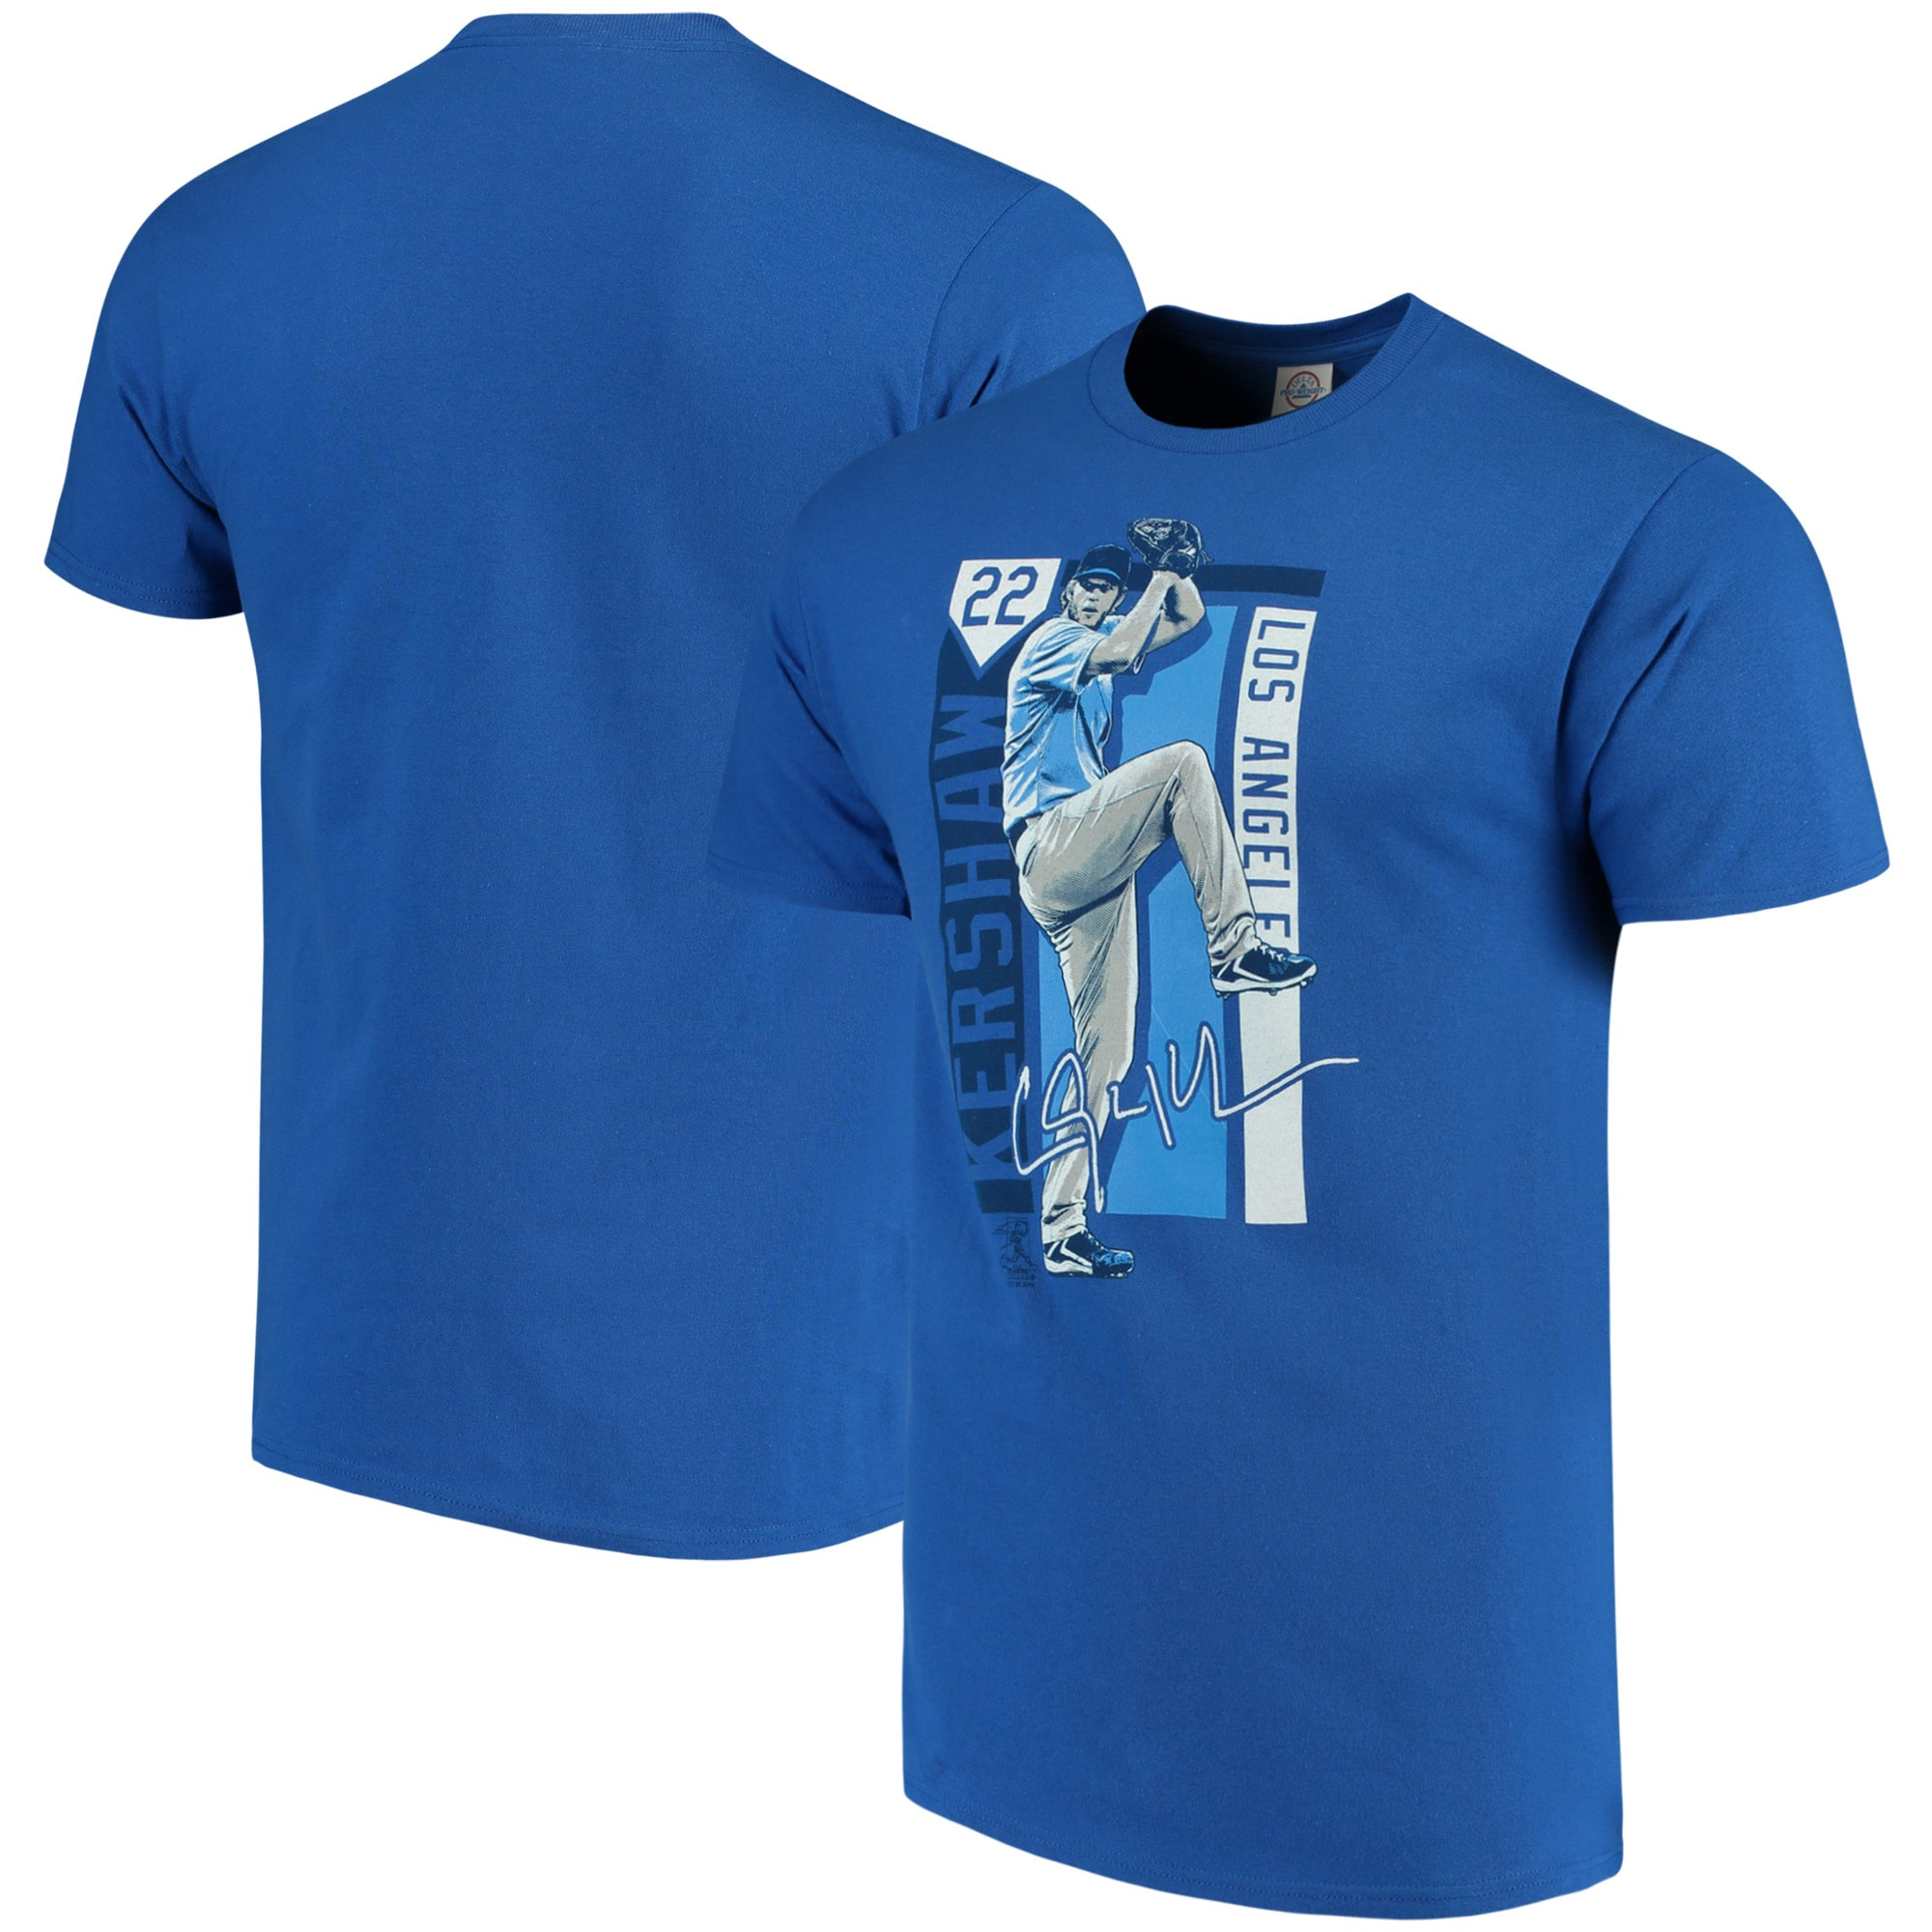 Clayton Kershaw Los Angeles Dodgers Color Block Series Player Graphic T-Shirt - Royal